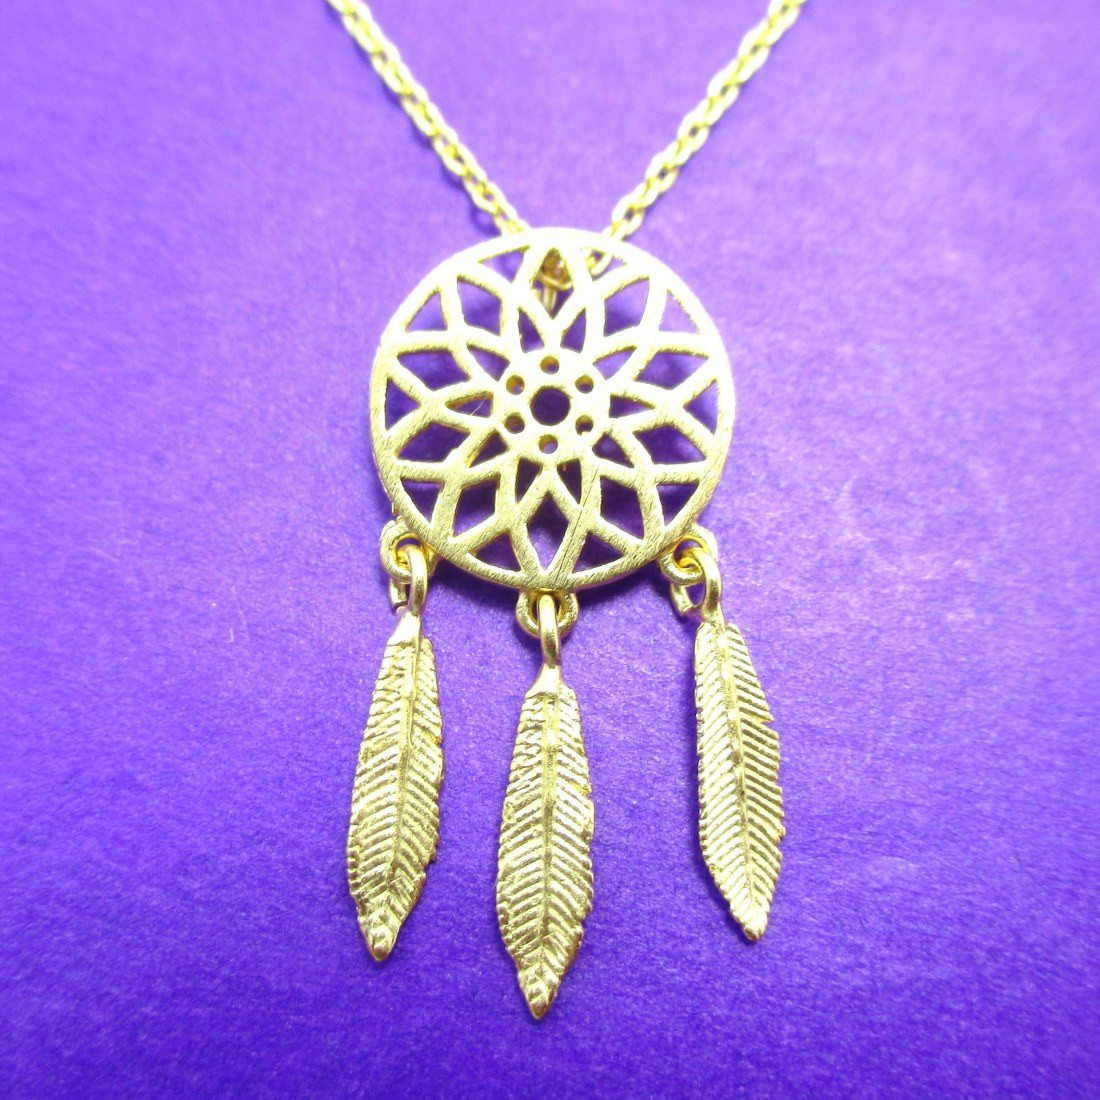 Feathered Dream Catcher Shaped Charm Necklace in Gold